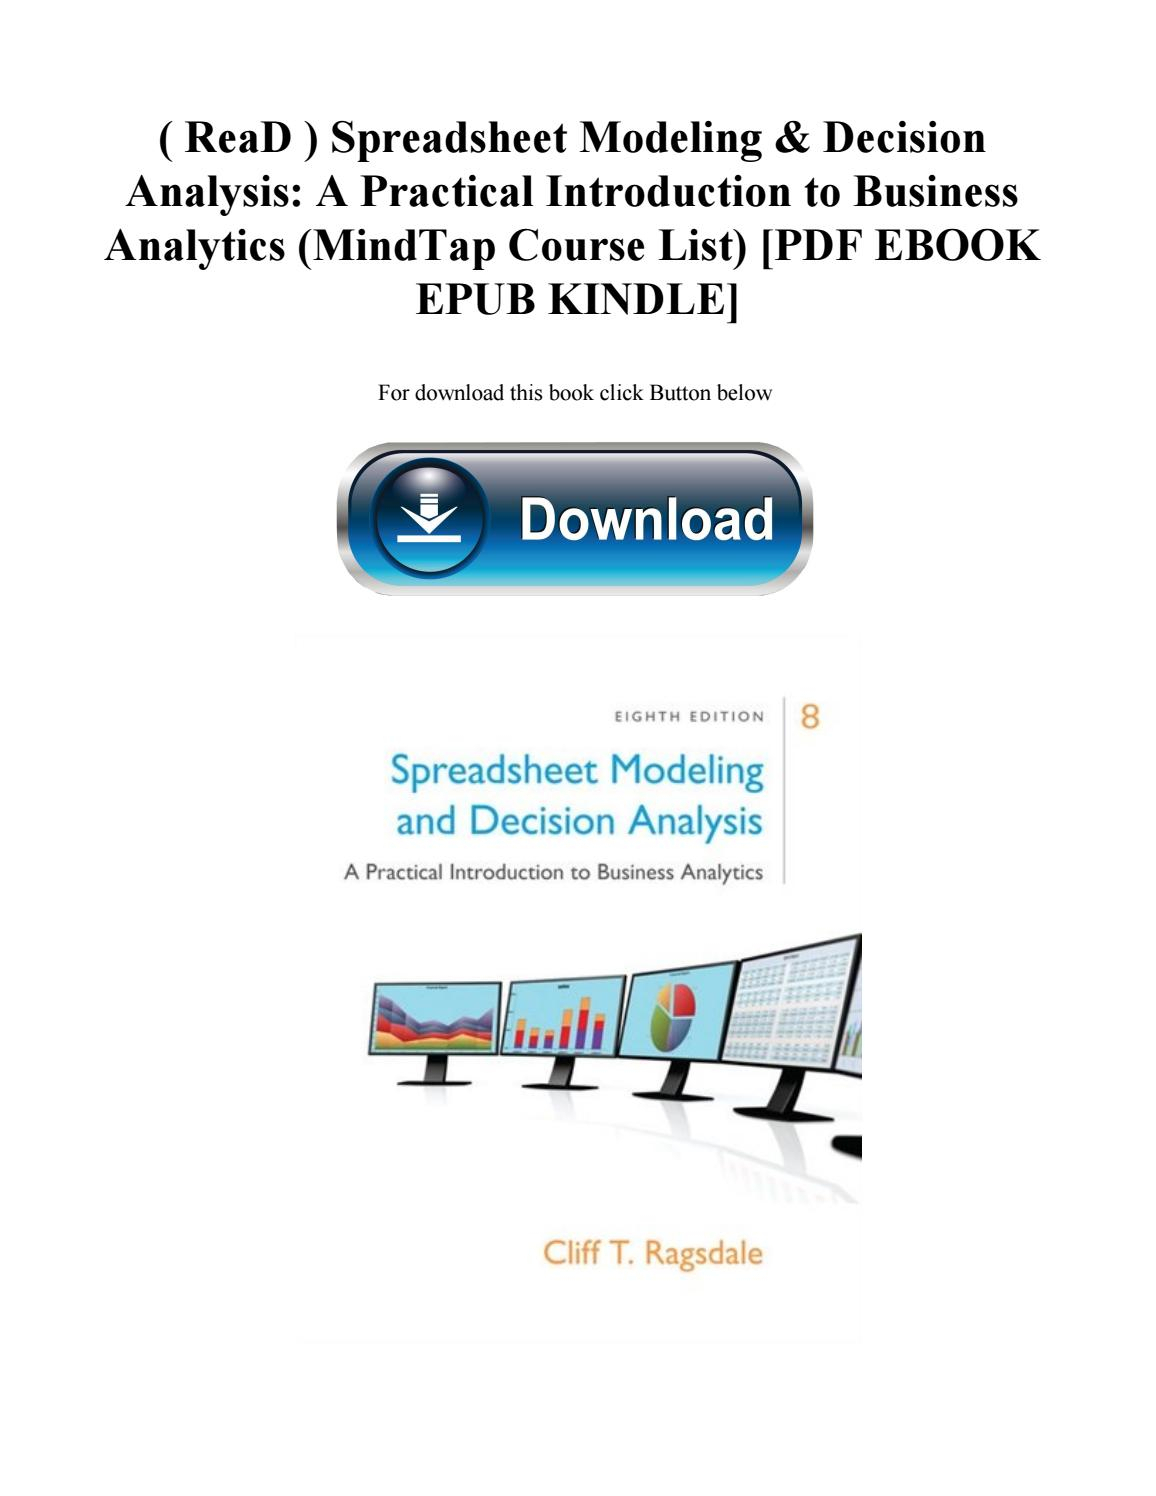 Spreadsheet Modeling Course With Read  Spreadsheet Modeling  Decision Analysis A Practical